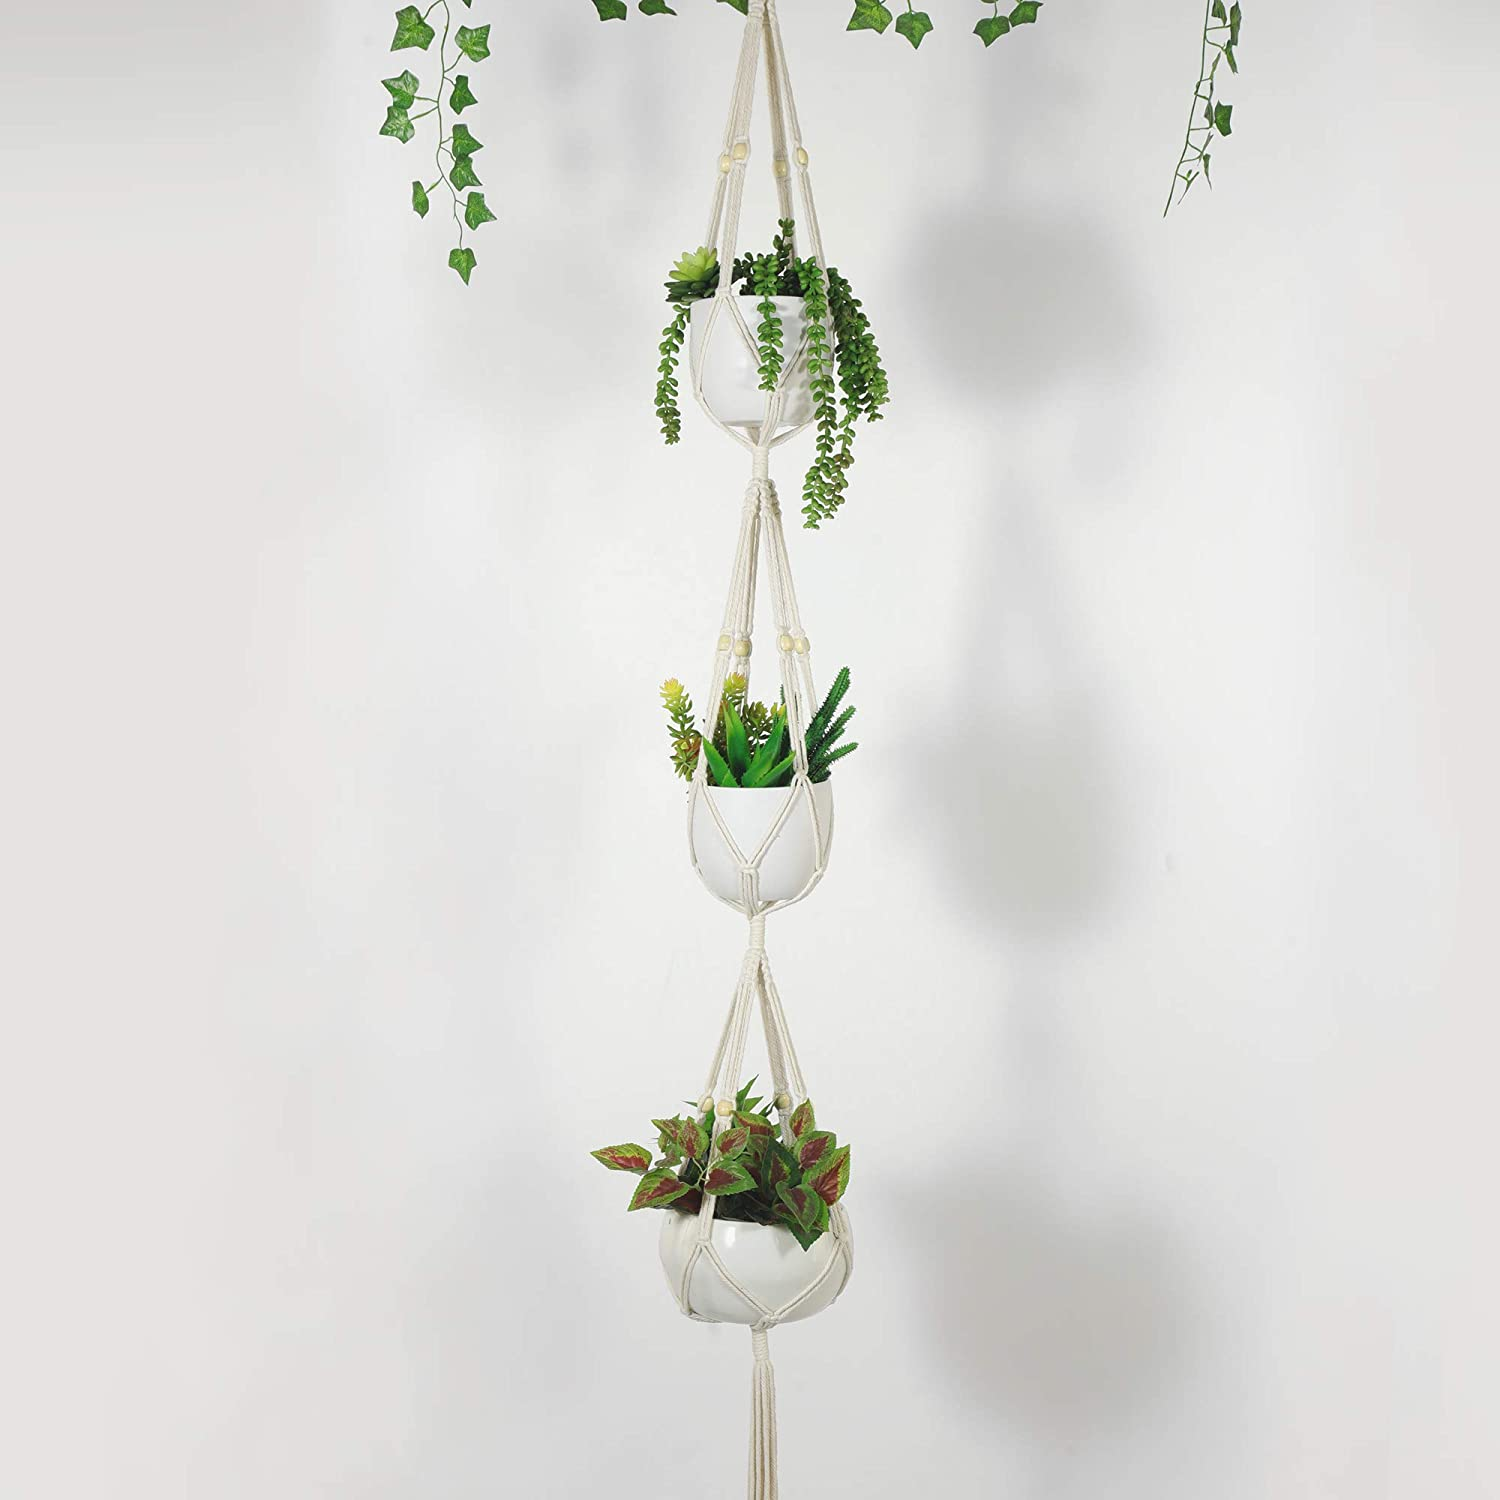 Soonow 5 Pack Macrame Plant Hangers with Hooks Different Tiers